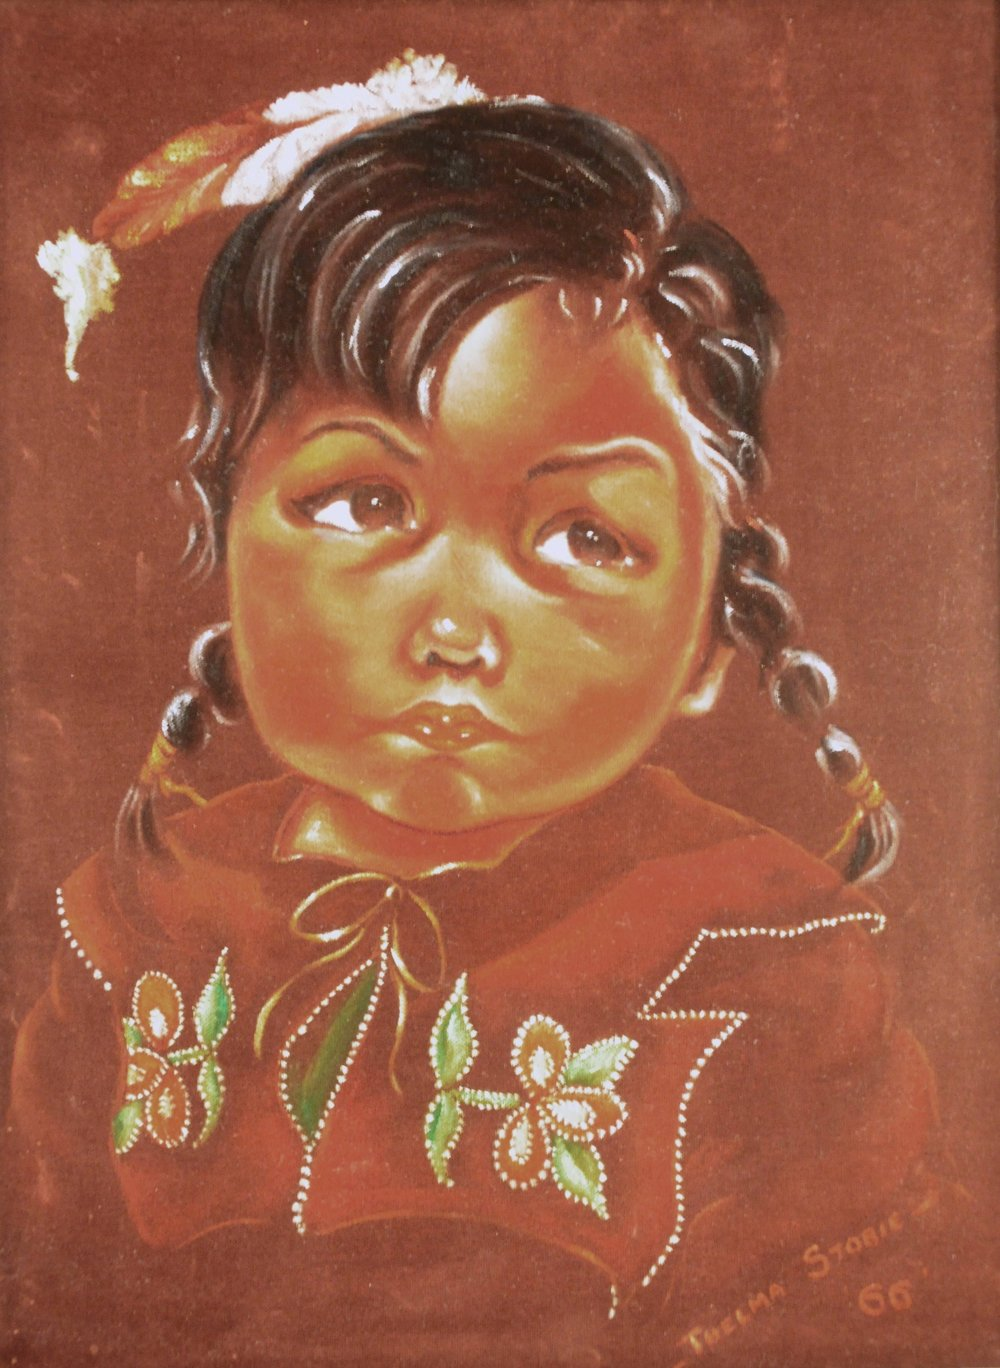 Untitled (Portrait of Child), 1966, Thelma Stobie, acrylic on velvet